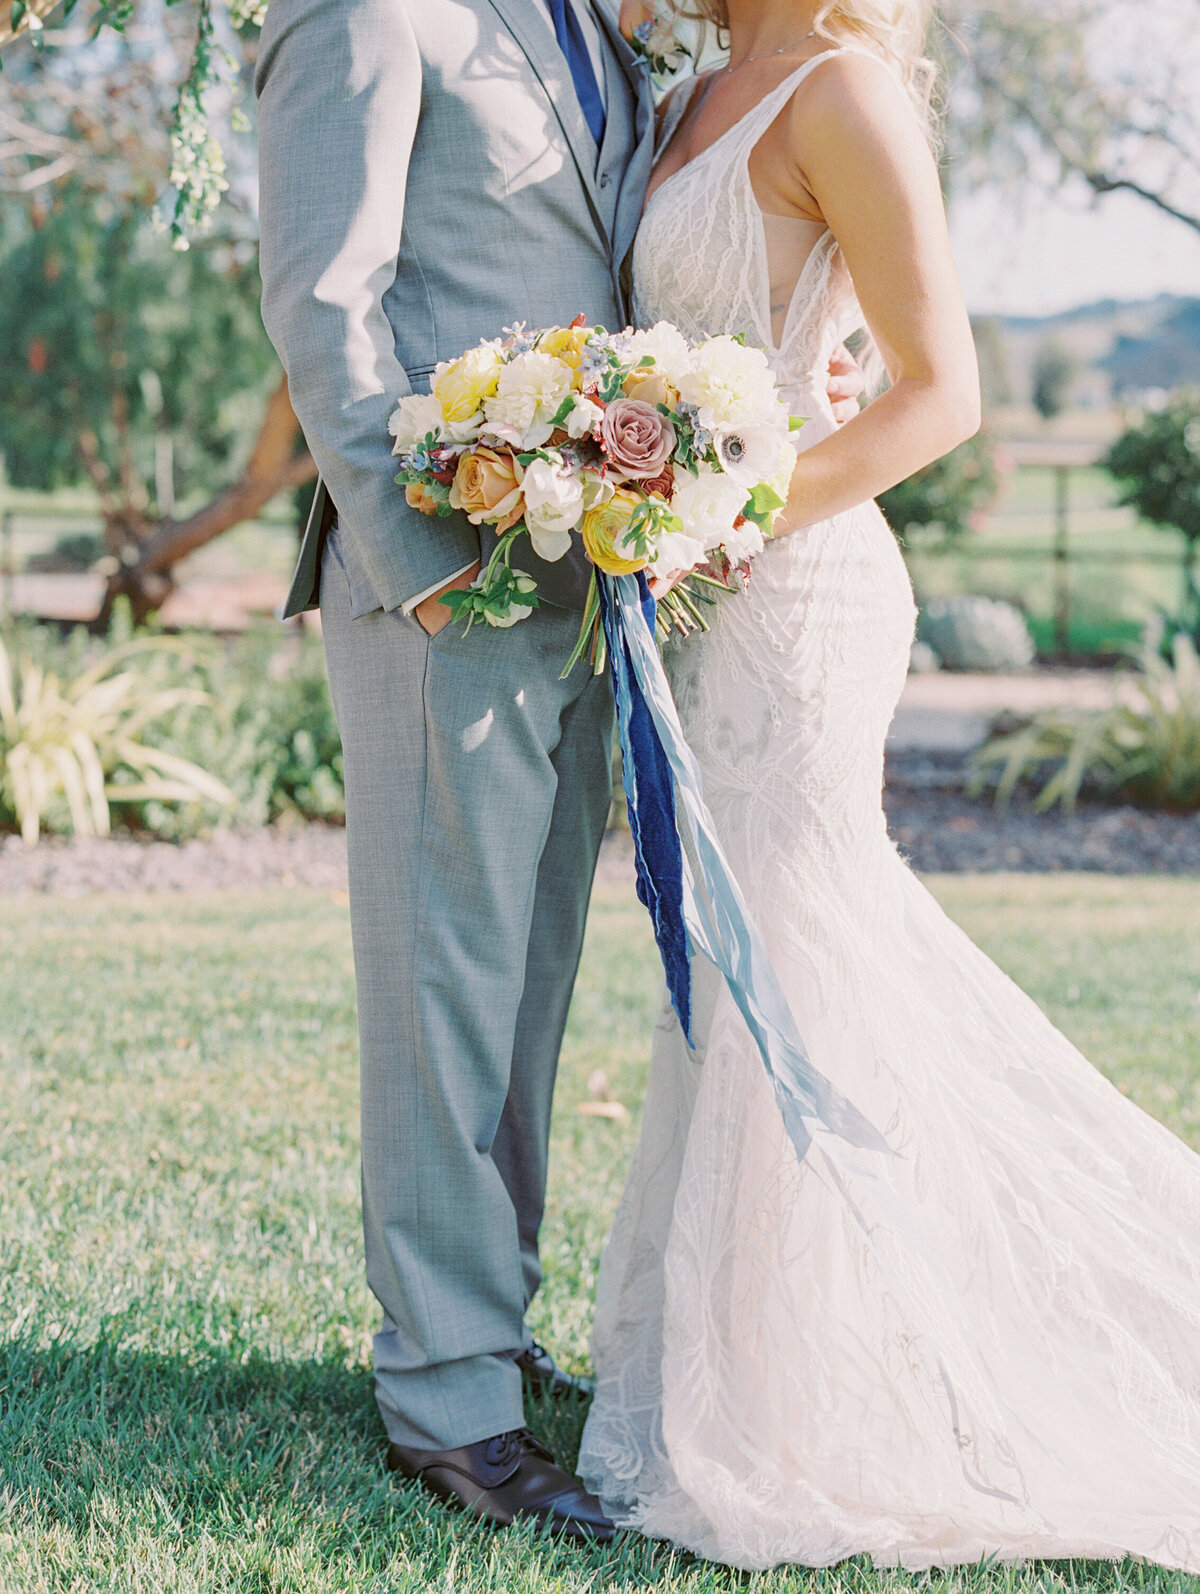 Pepper-Tree-Ranch-Wedding-Inspiration-San-Luis-Obispo-Ashley-Rae-Studio-158